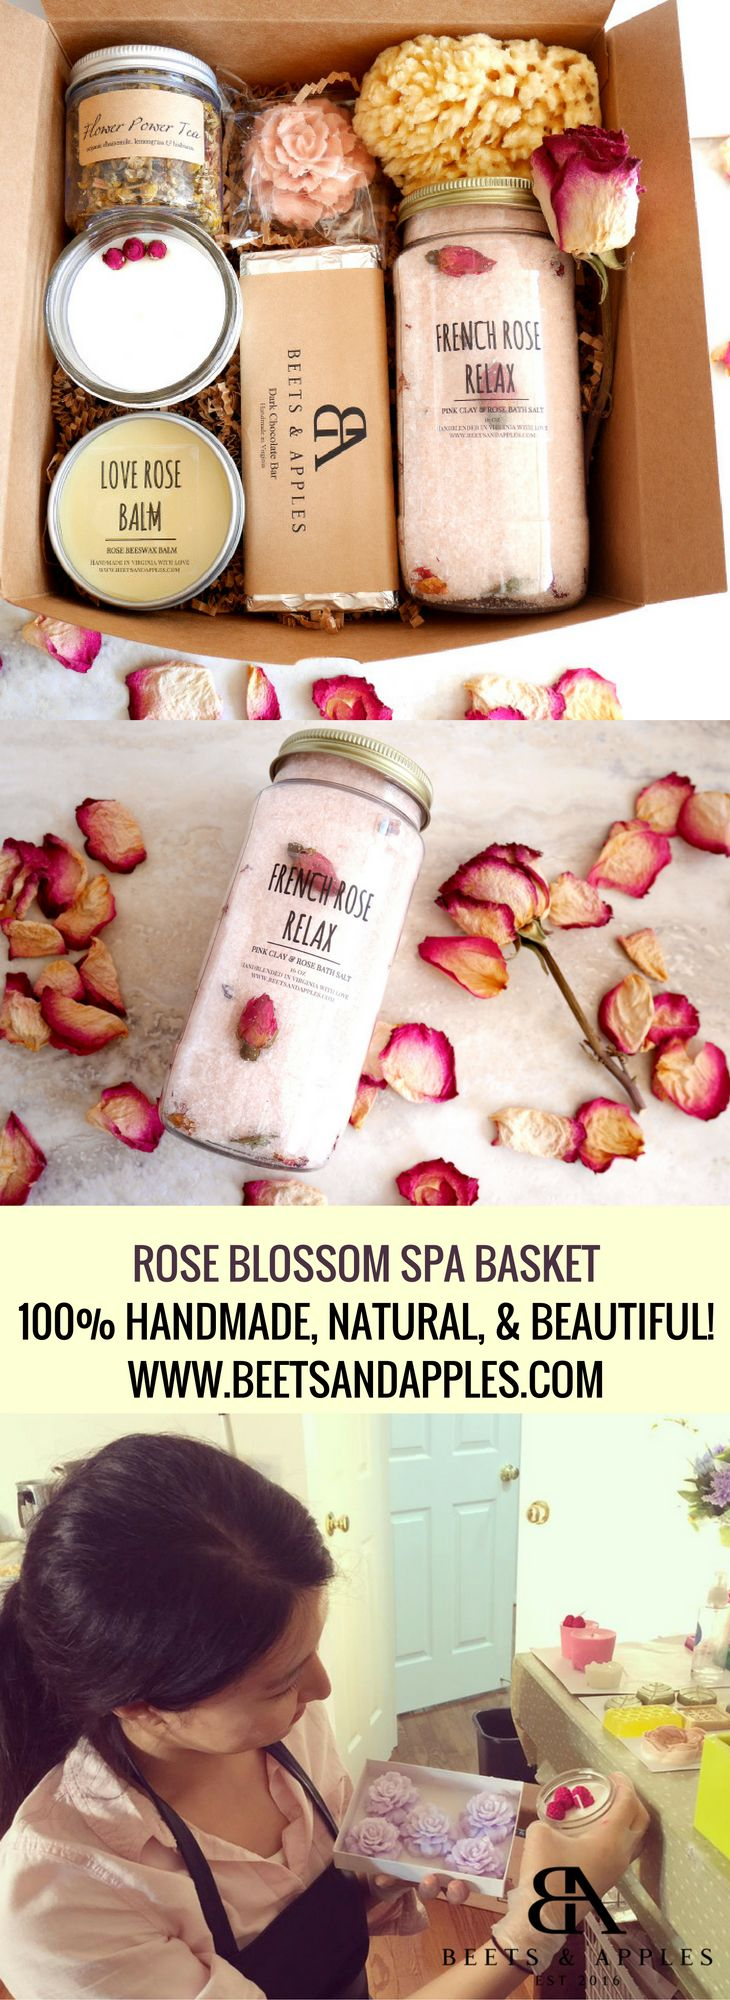 Beets & Apples's Rose Blossom is one of a kind gift box to delight your loved ones in the sweetest way! Perfect gift to congrats birthday, express gratitude and celebrate new accomplishment, it will bring much needed deep relaxation to your recipient. Gifts are  designed and handmade in a small-batch in our studio! #spa spa gifts basket #spa-gift-basket #spa-gifts #bridesmaid-gifts #bridesmaid-spa-gift #bridesmaid-gift-ideas #bridesmaid-proposal-gifts #spa-basket #get-well-gifts #giftbox